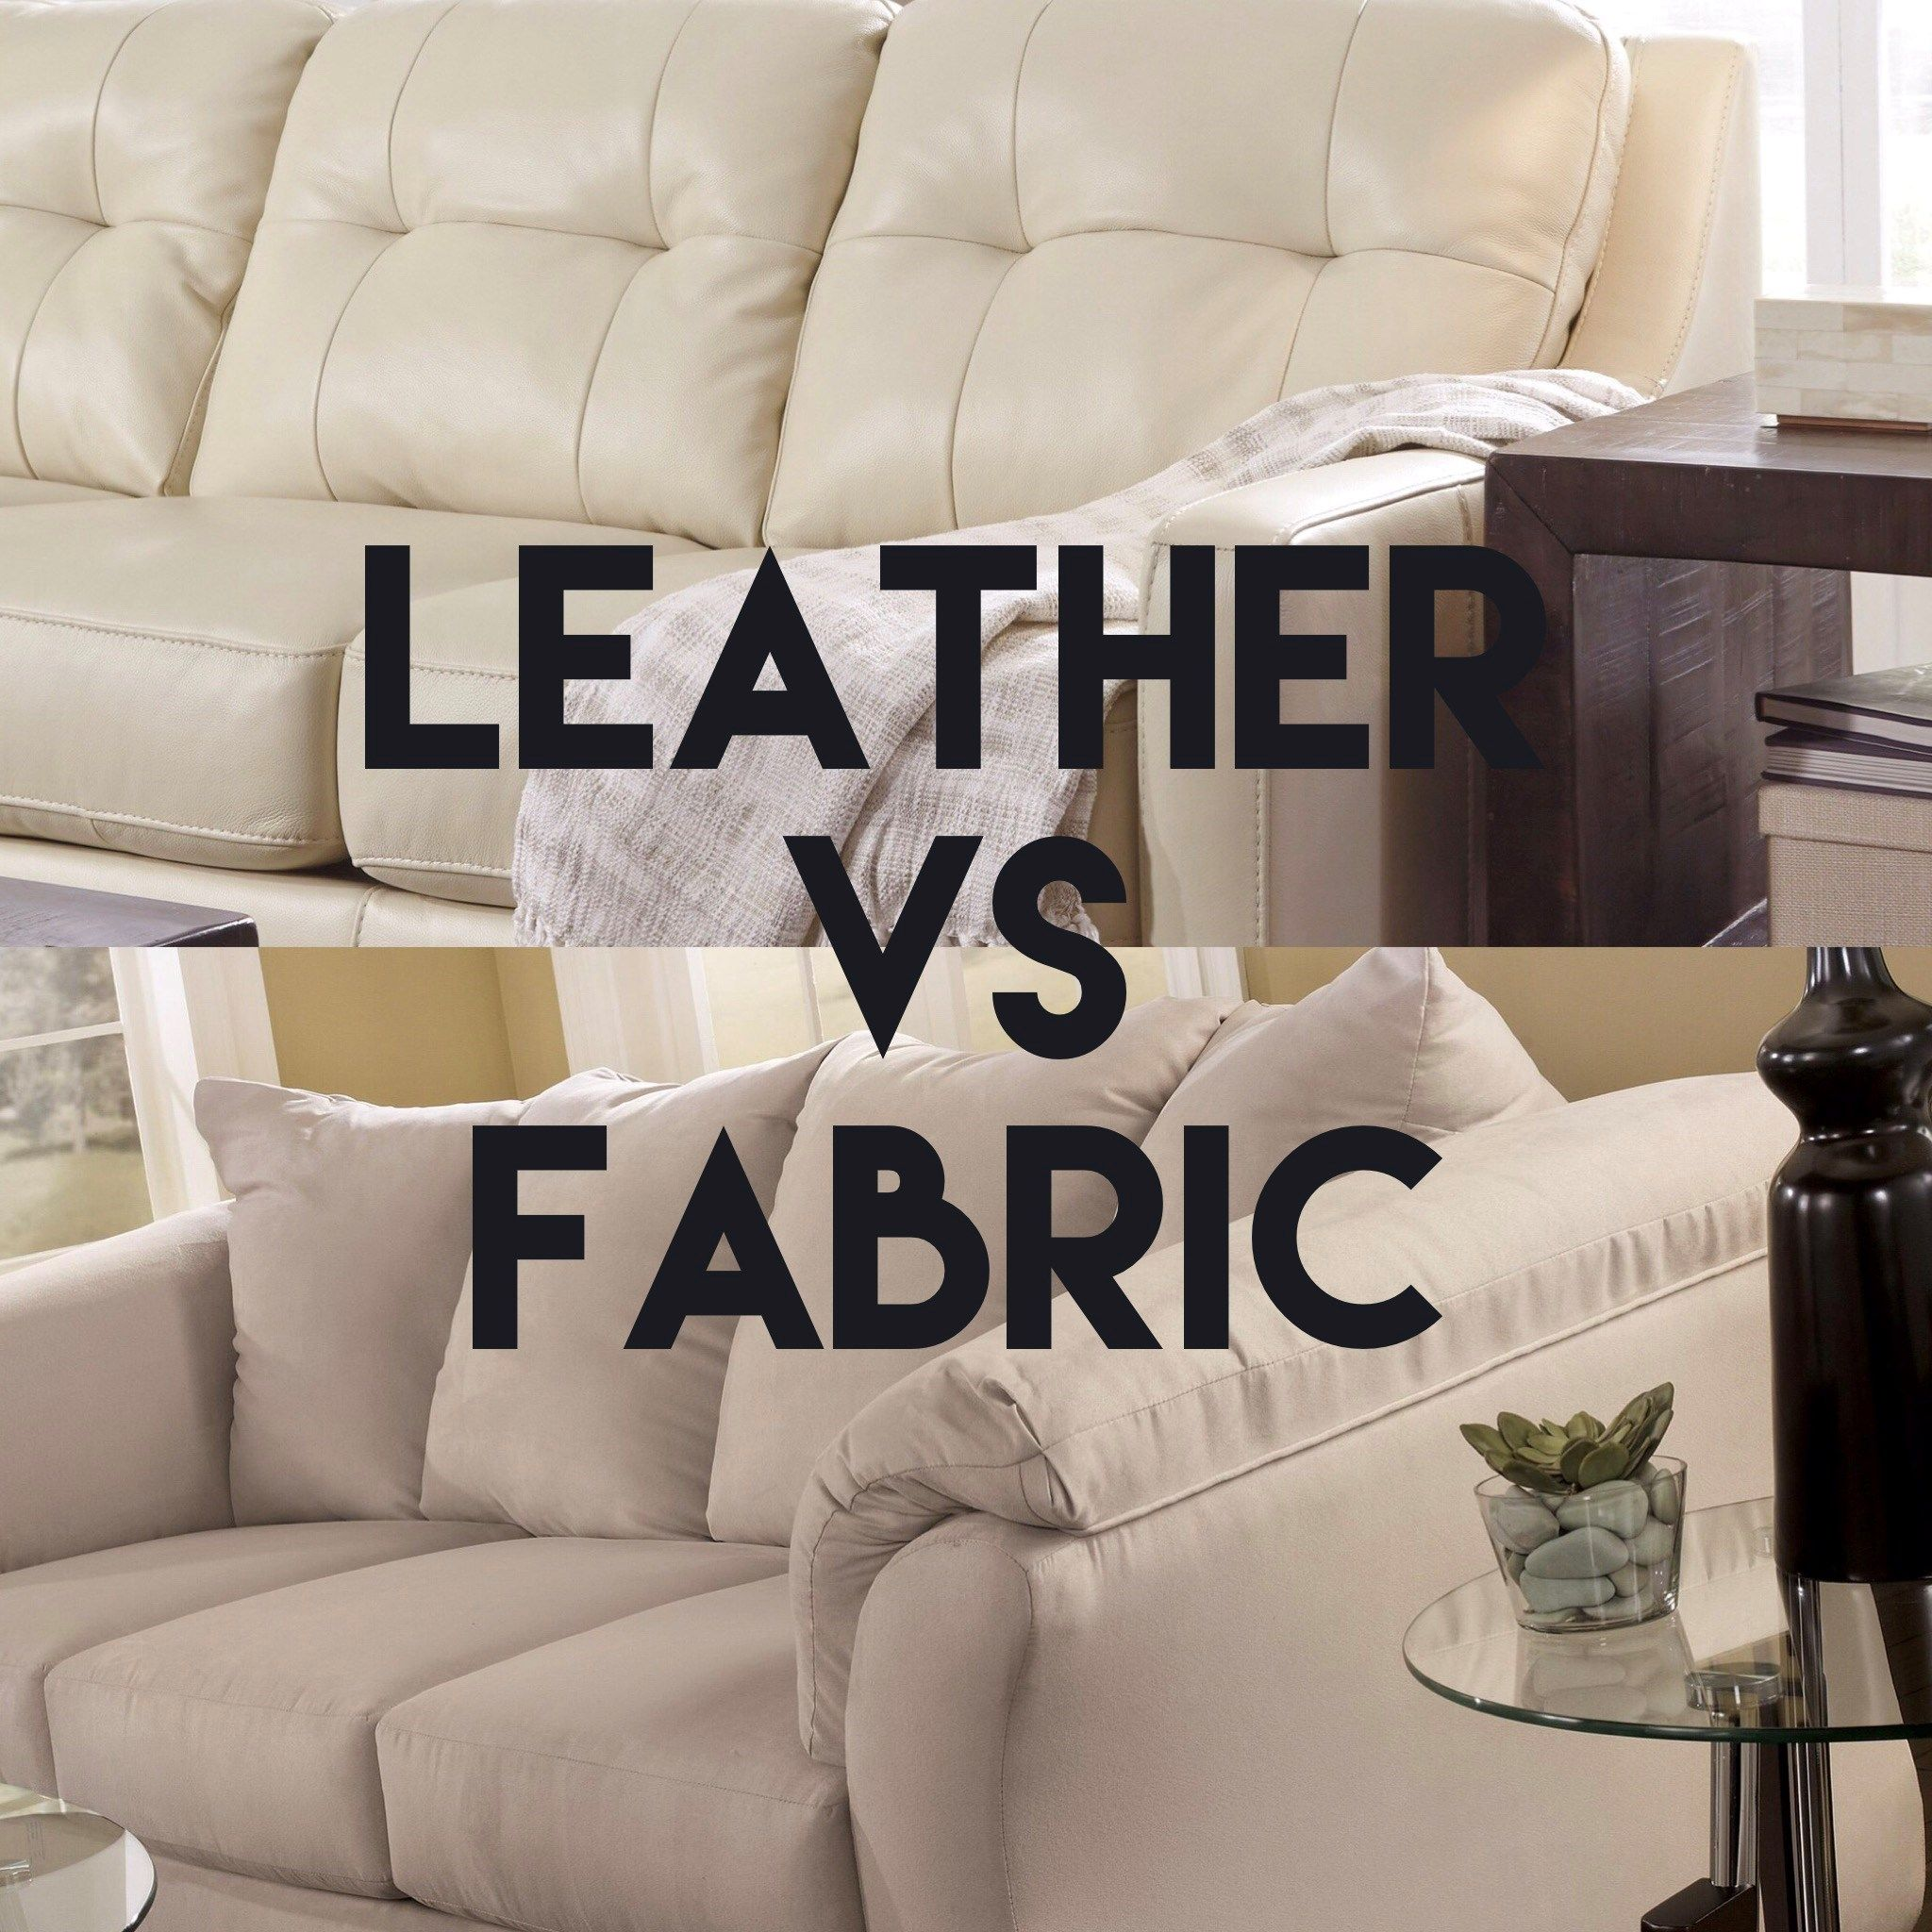 This Will Help You Decide Between Leather Vs Fabric Sofas Living Room Leather Couch Fabric Leather Couch